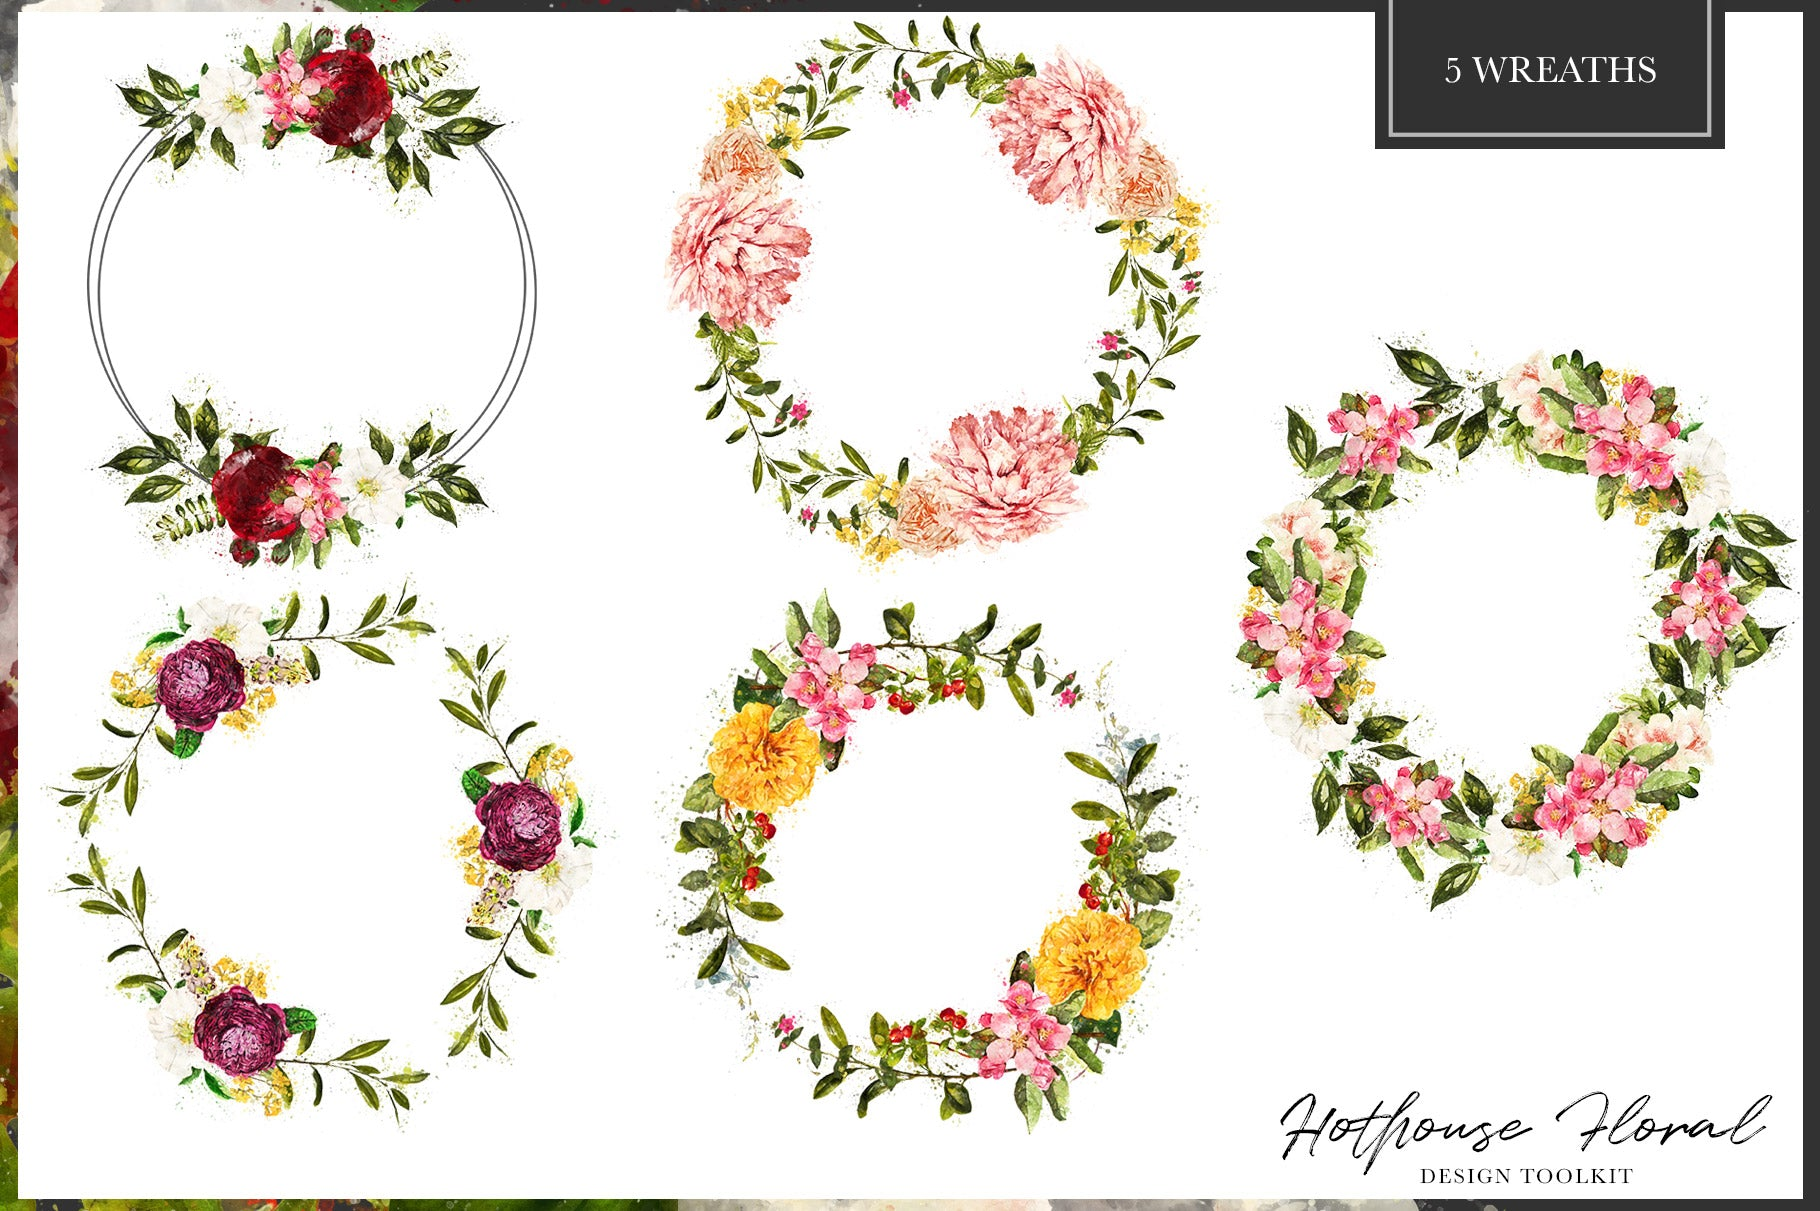 Hothouse Floral Design Toolkit Avalon Rose Design